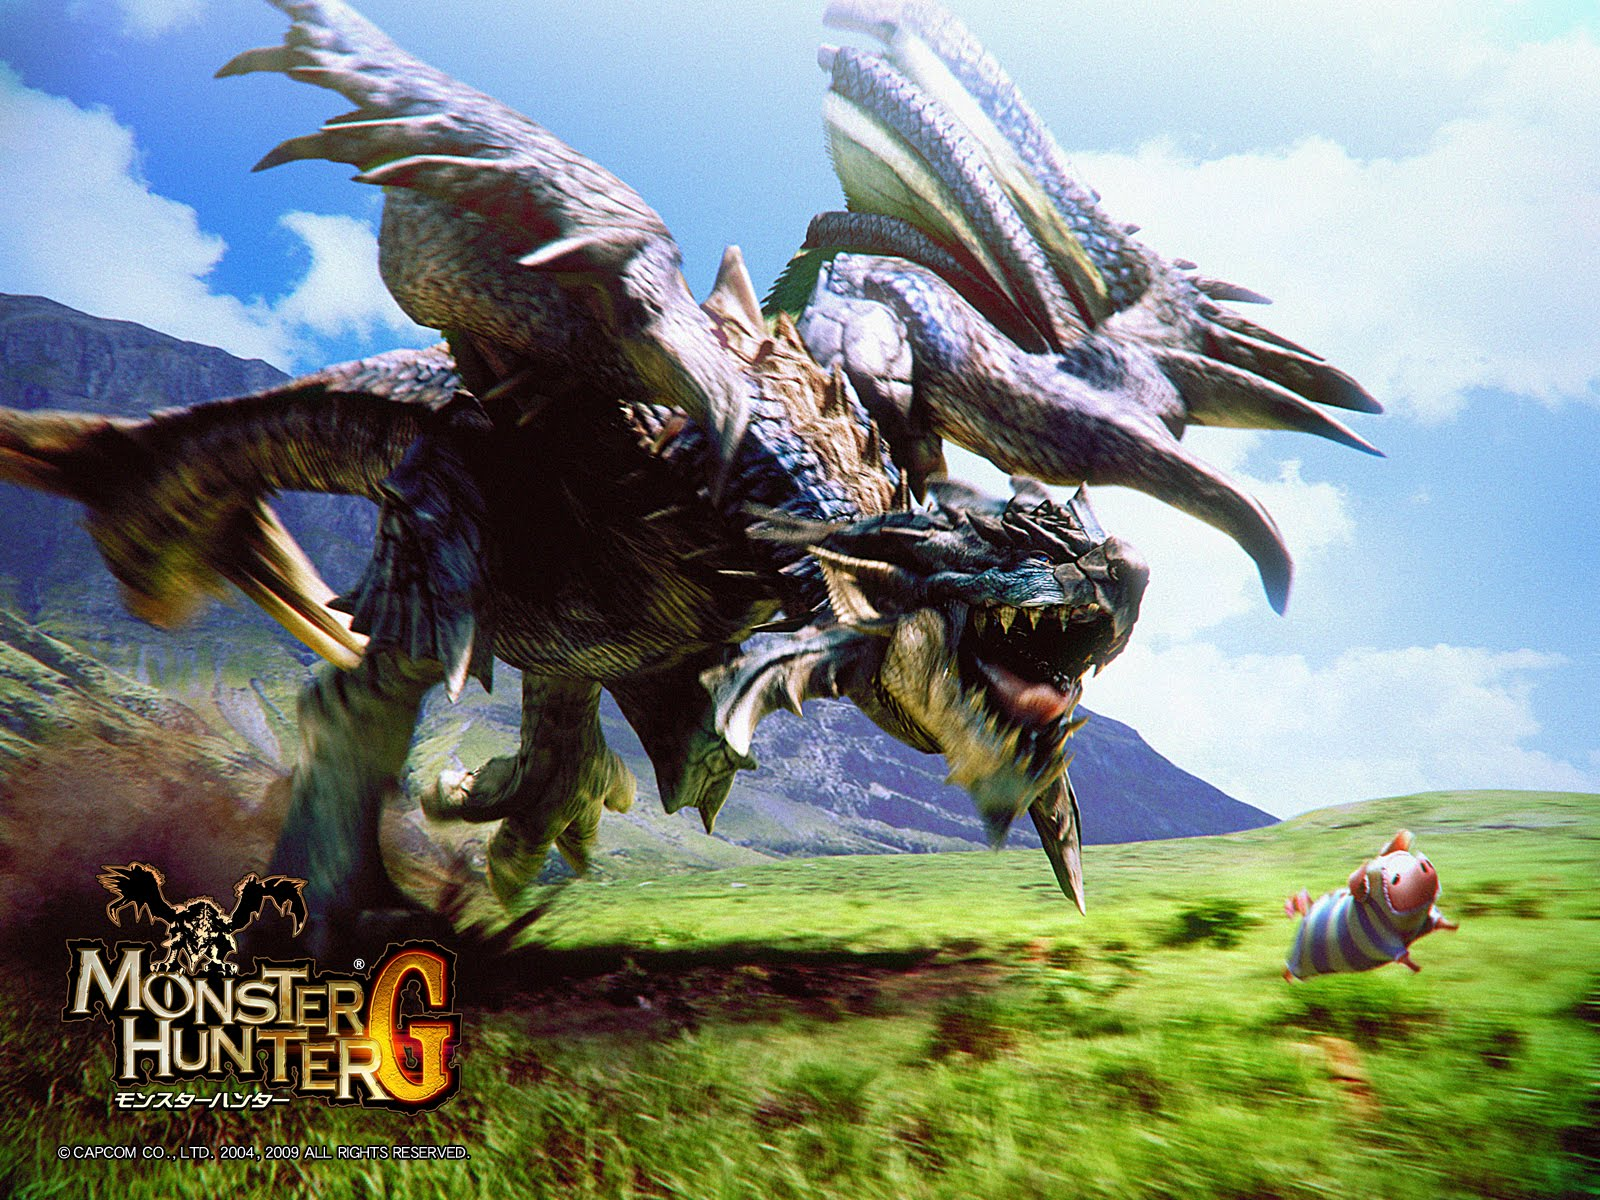 Monster Hunter HD & Widescreen Wallpaper 0.0115537055495283